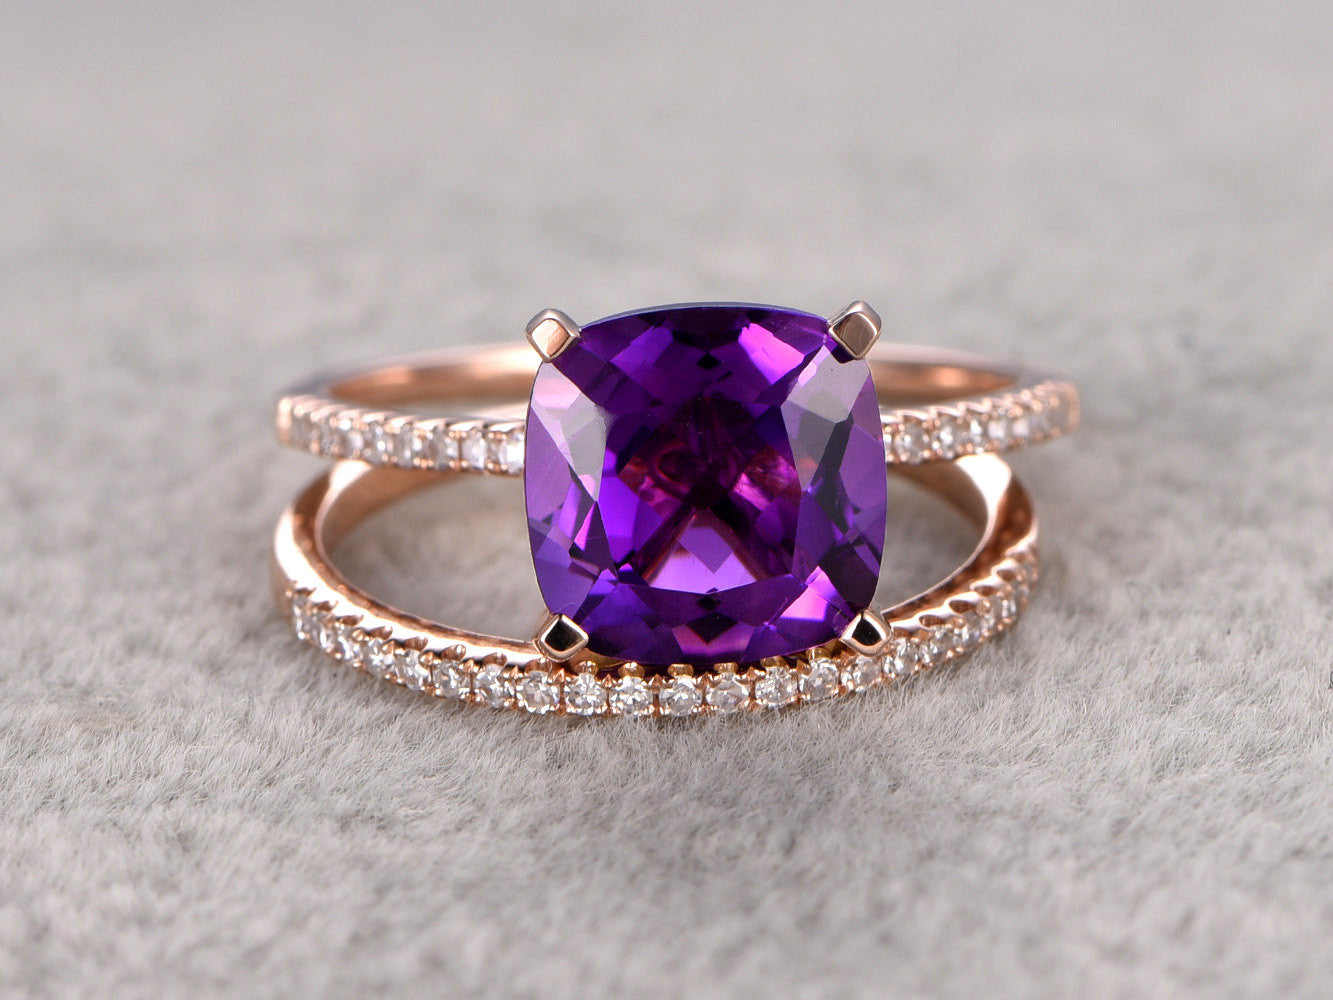 8x8mm Cushion Purple Amethyst Engagement ring,Diamond wedding band,14K Rose Gold,Promise Ring,Bridal Ring,Birthstone Stacking Ring